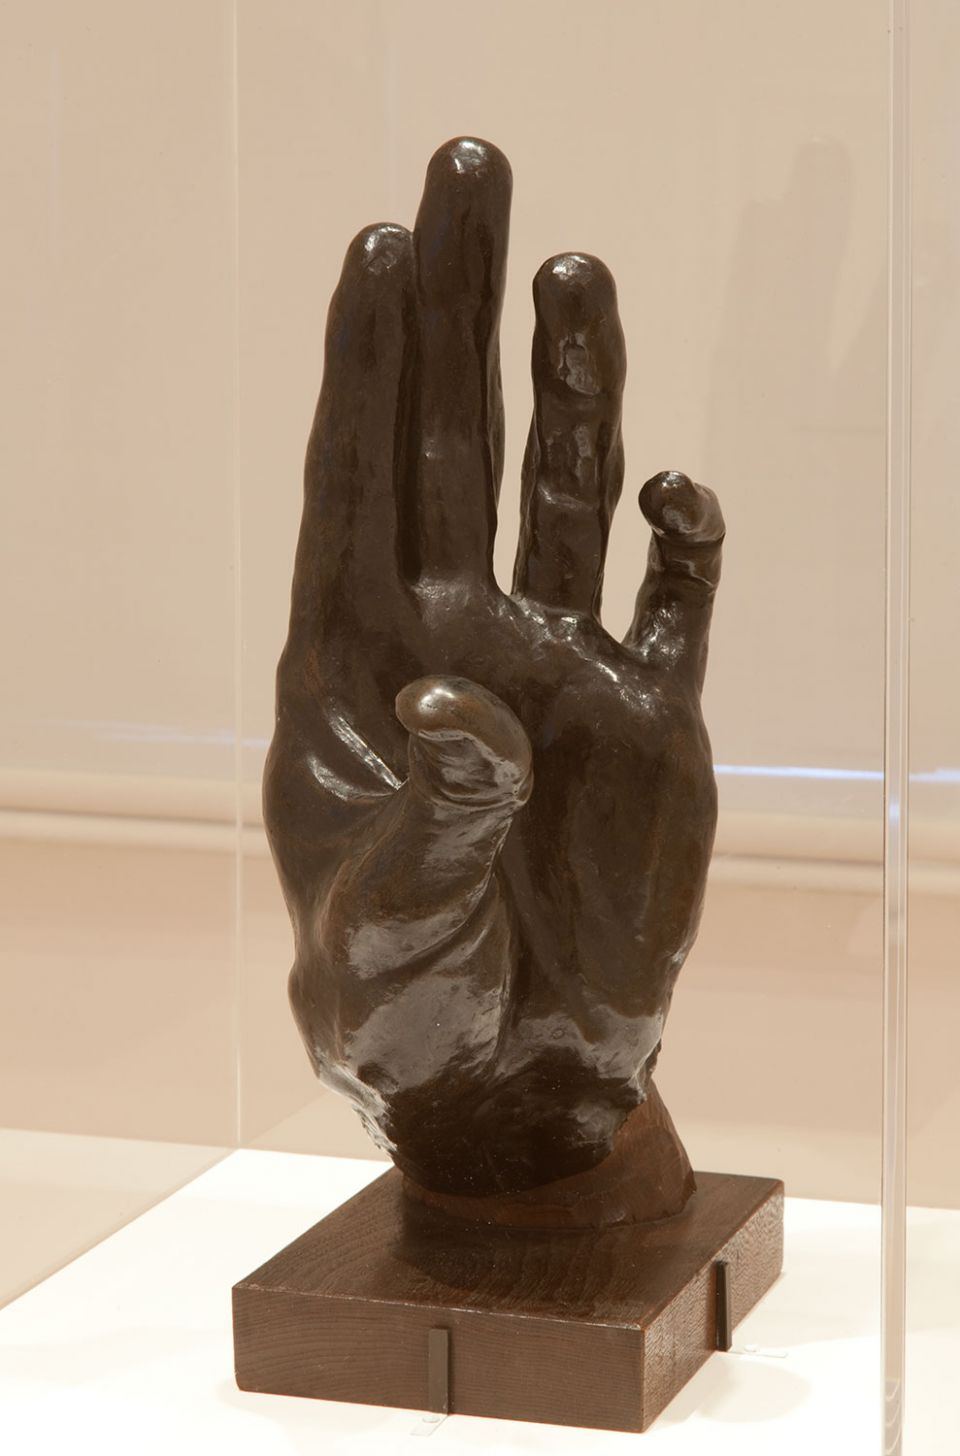 Installation view of A Study of Modern Japanese Sculpture, showing Kotaro Takamura's 'Hand' (1918, bronze with a wooden base)